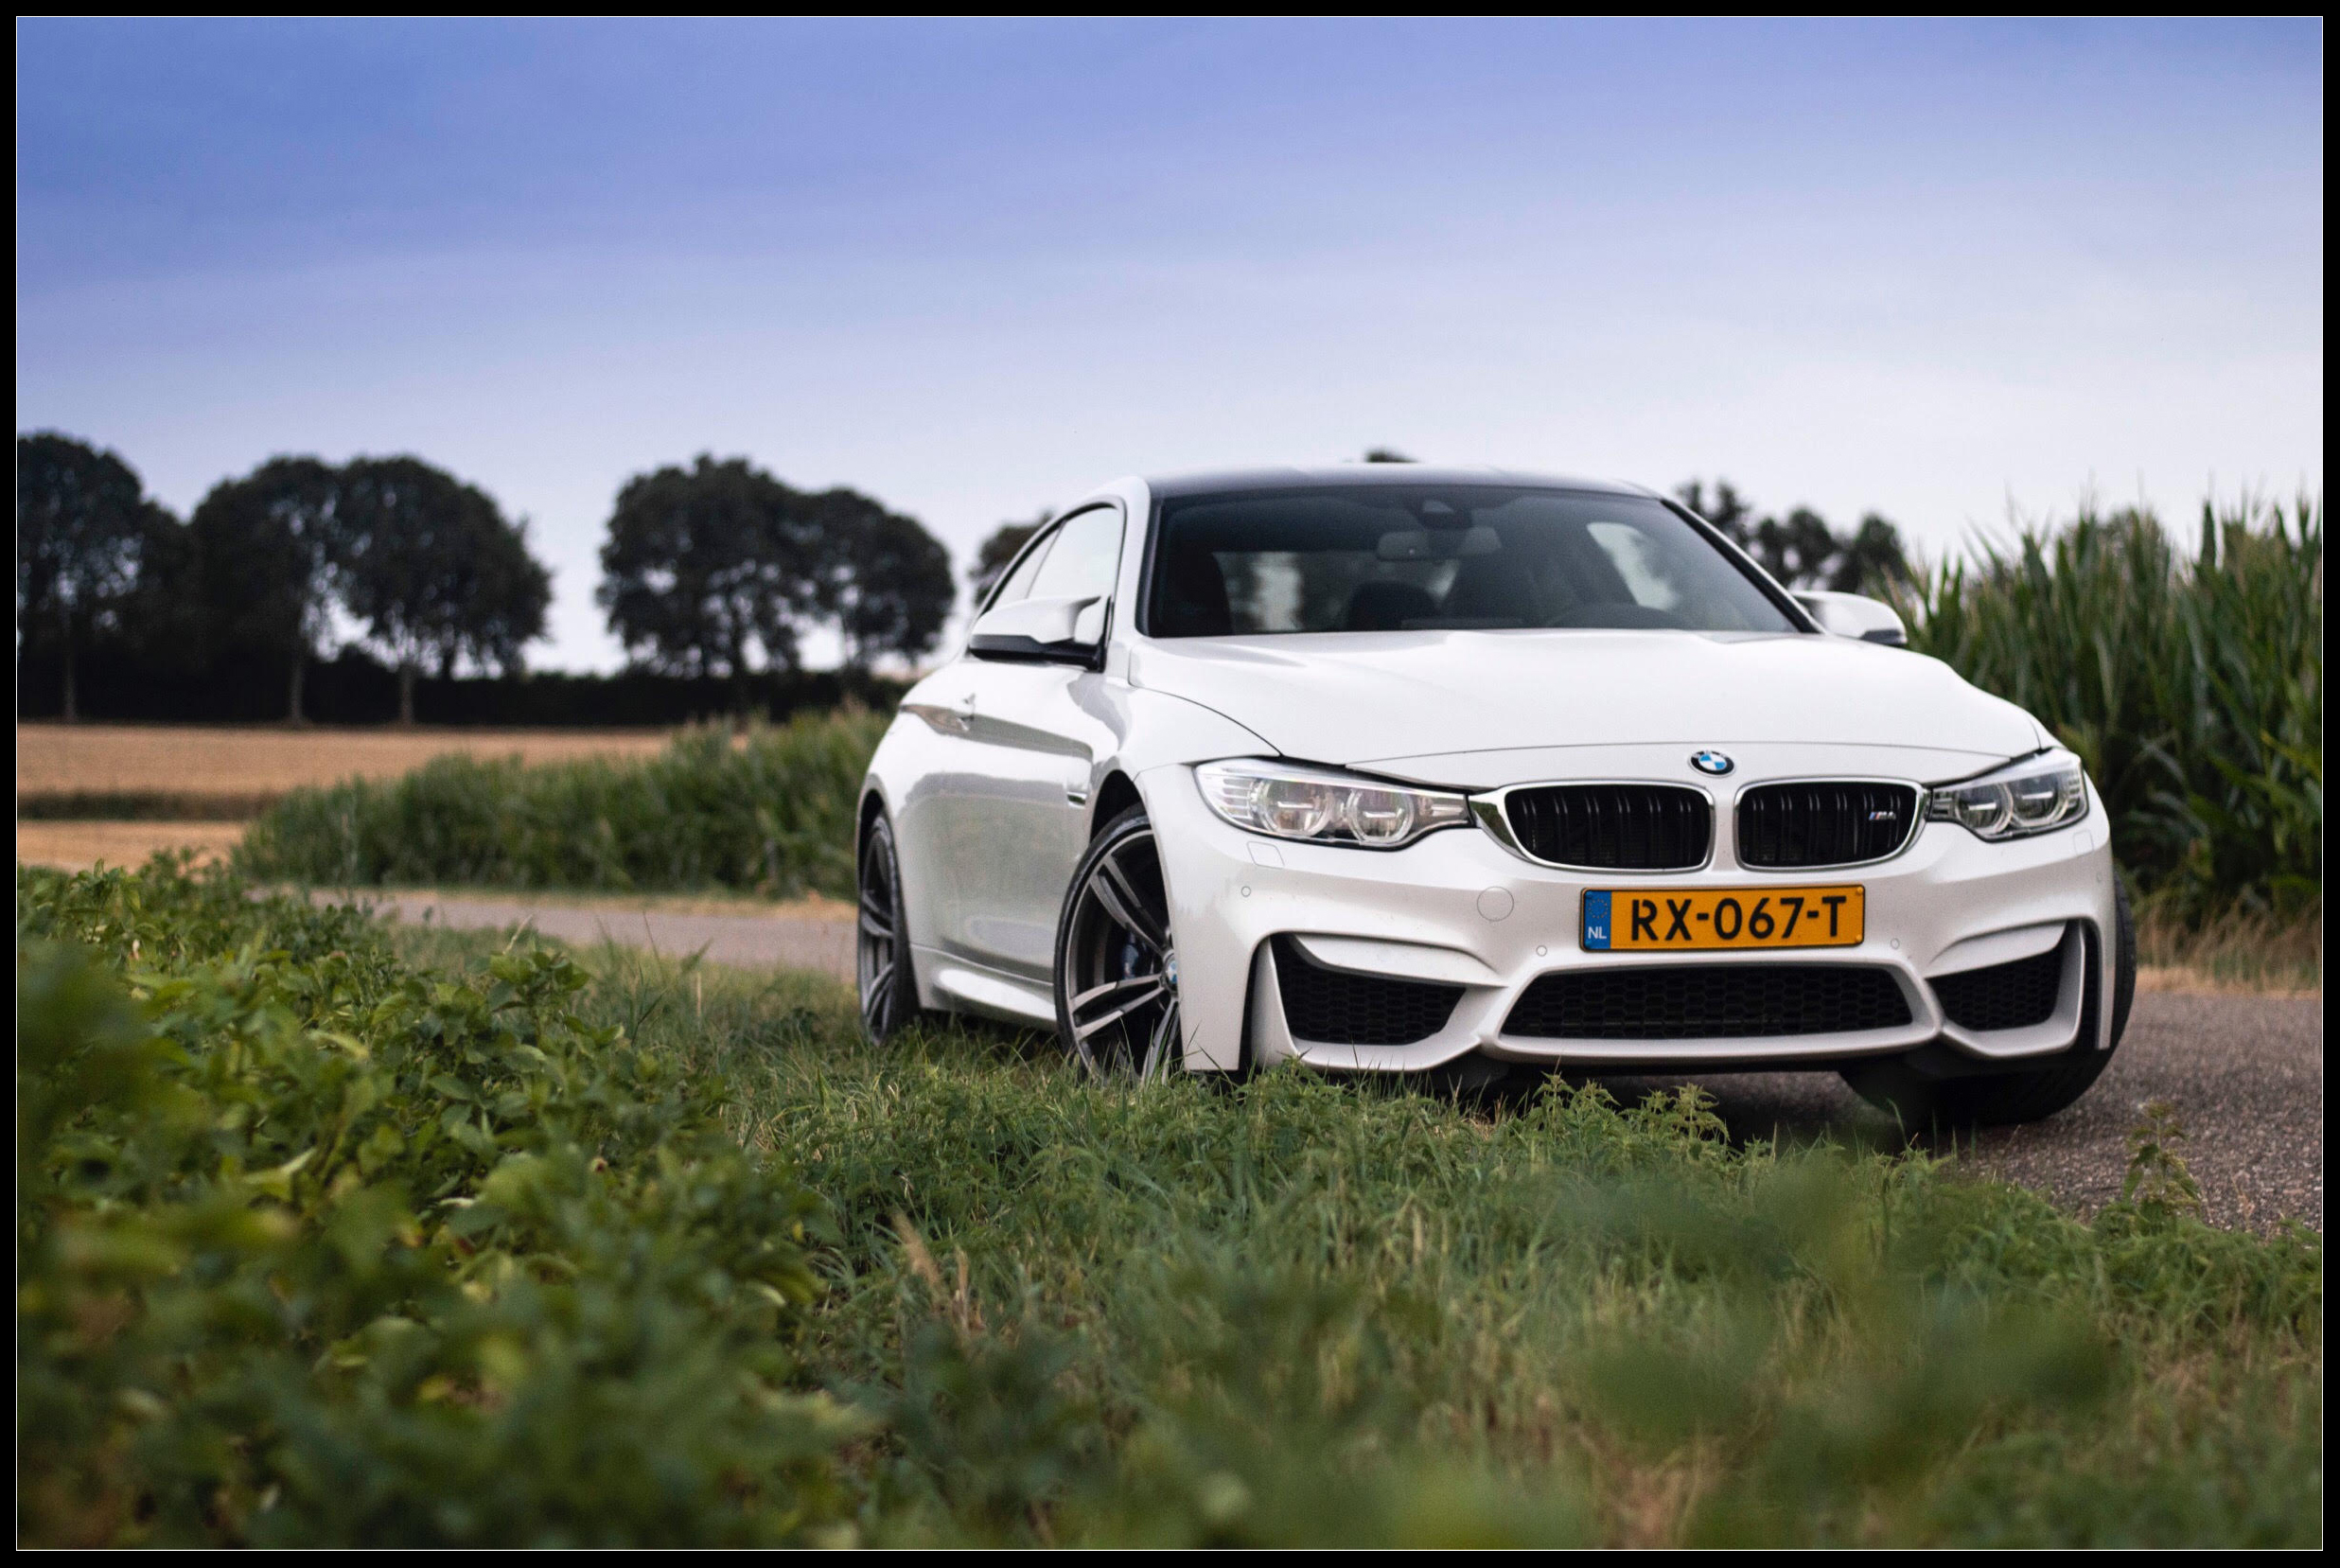 BMW_M4_photoshoot3.jpg